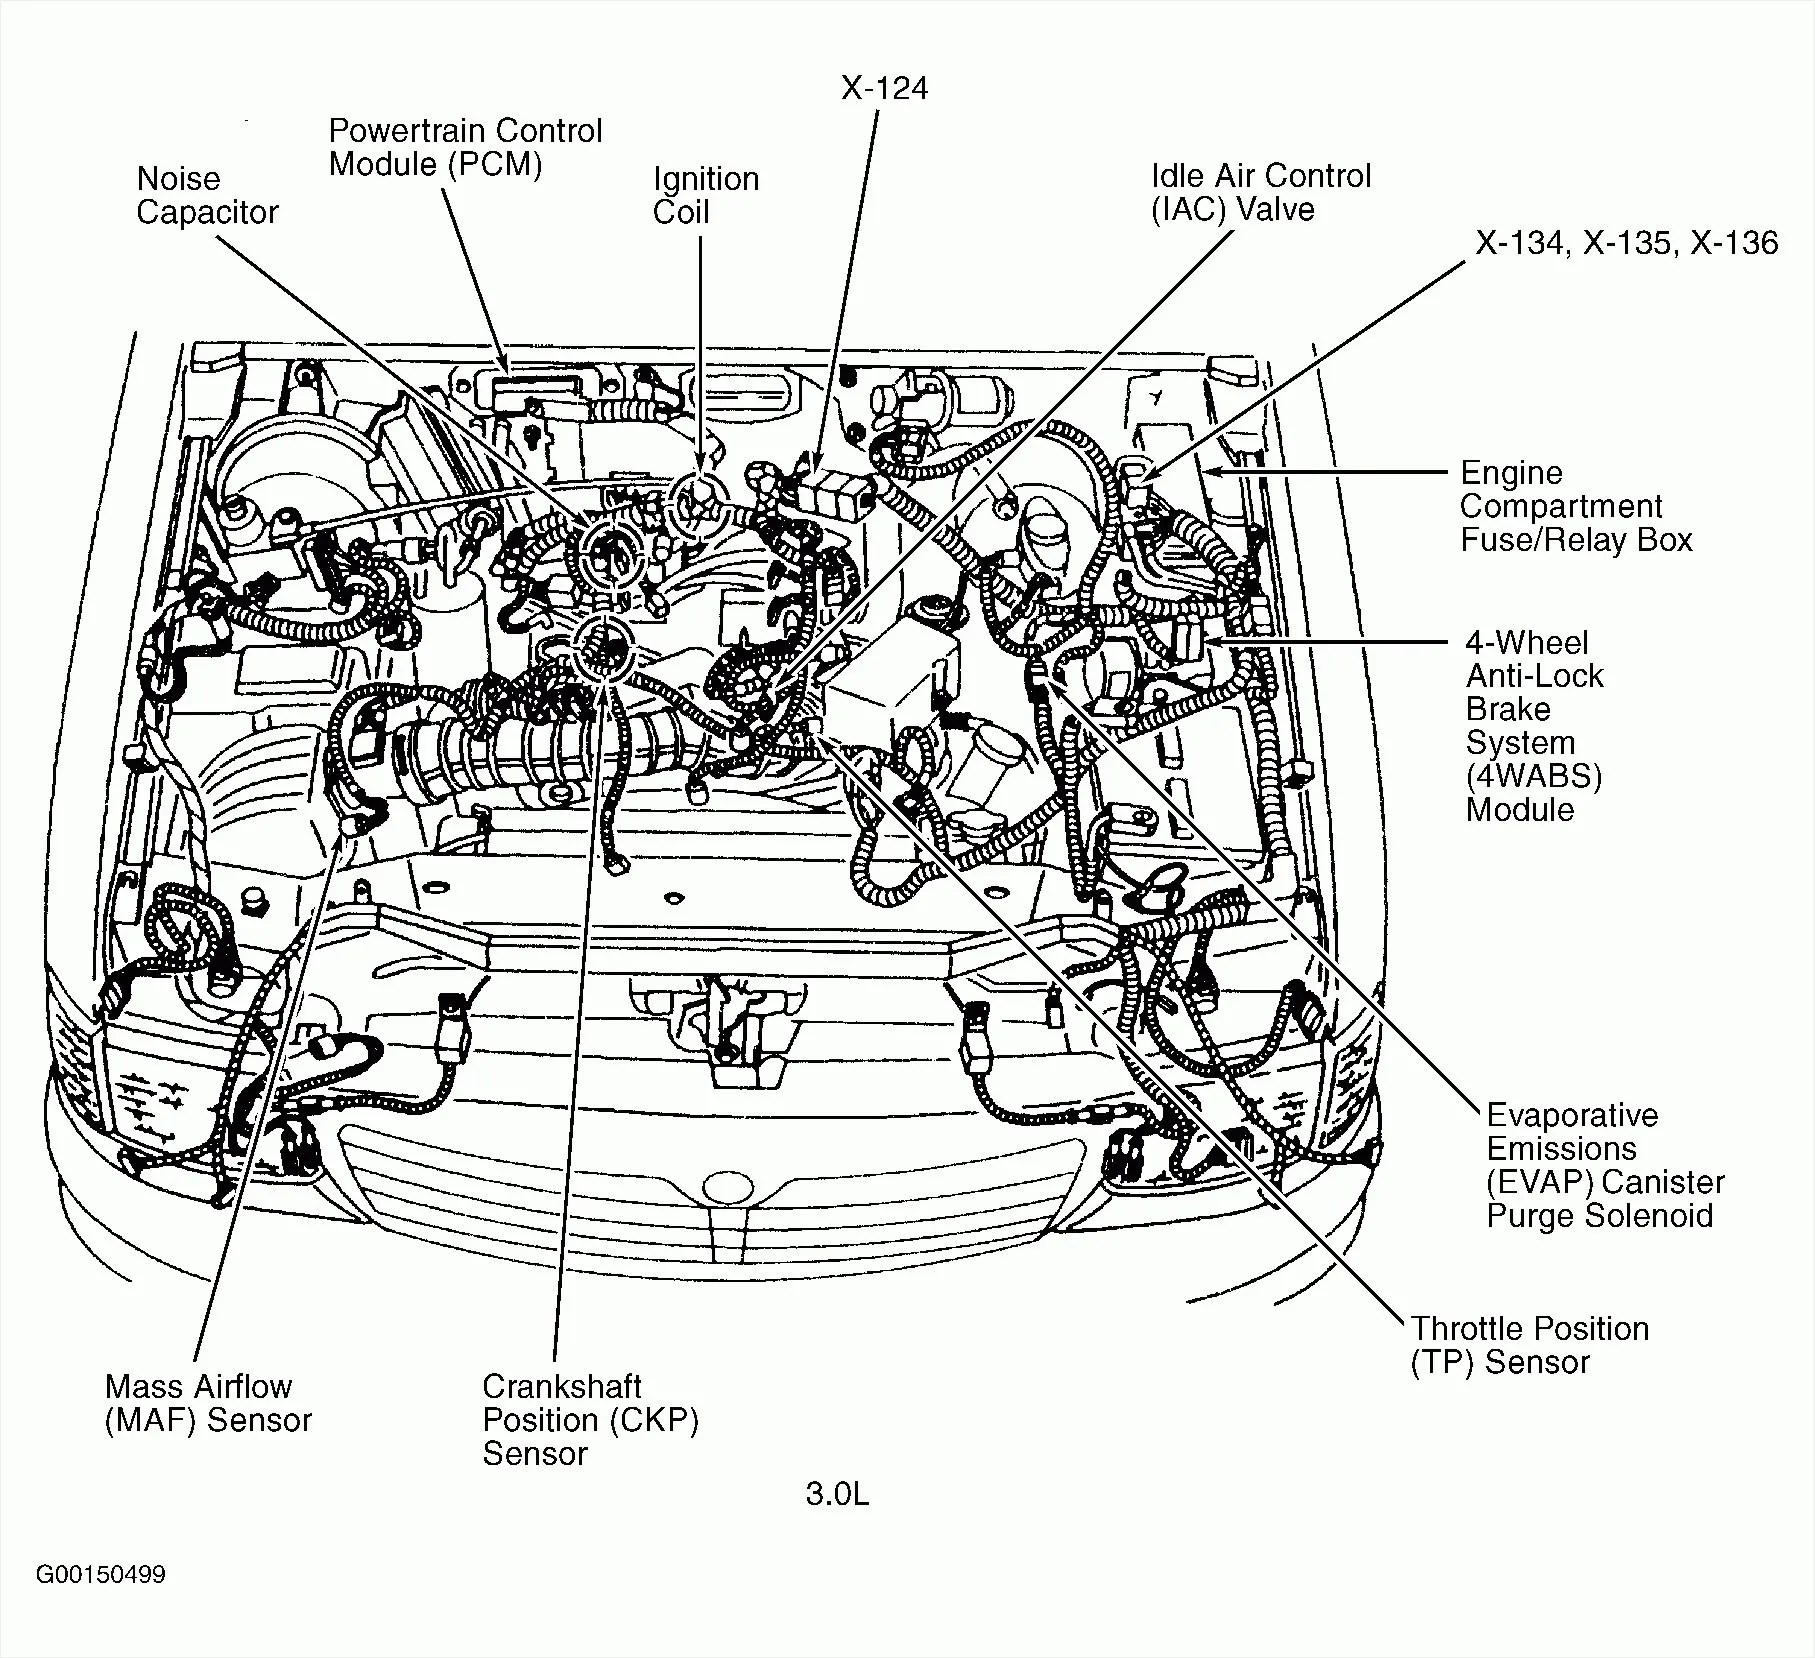 hight resolution of 2008 mercury mariner engine diagram wiring diagram blog 2008 mercury sable engine diagram